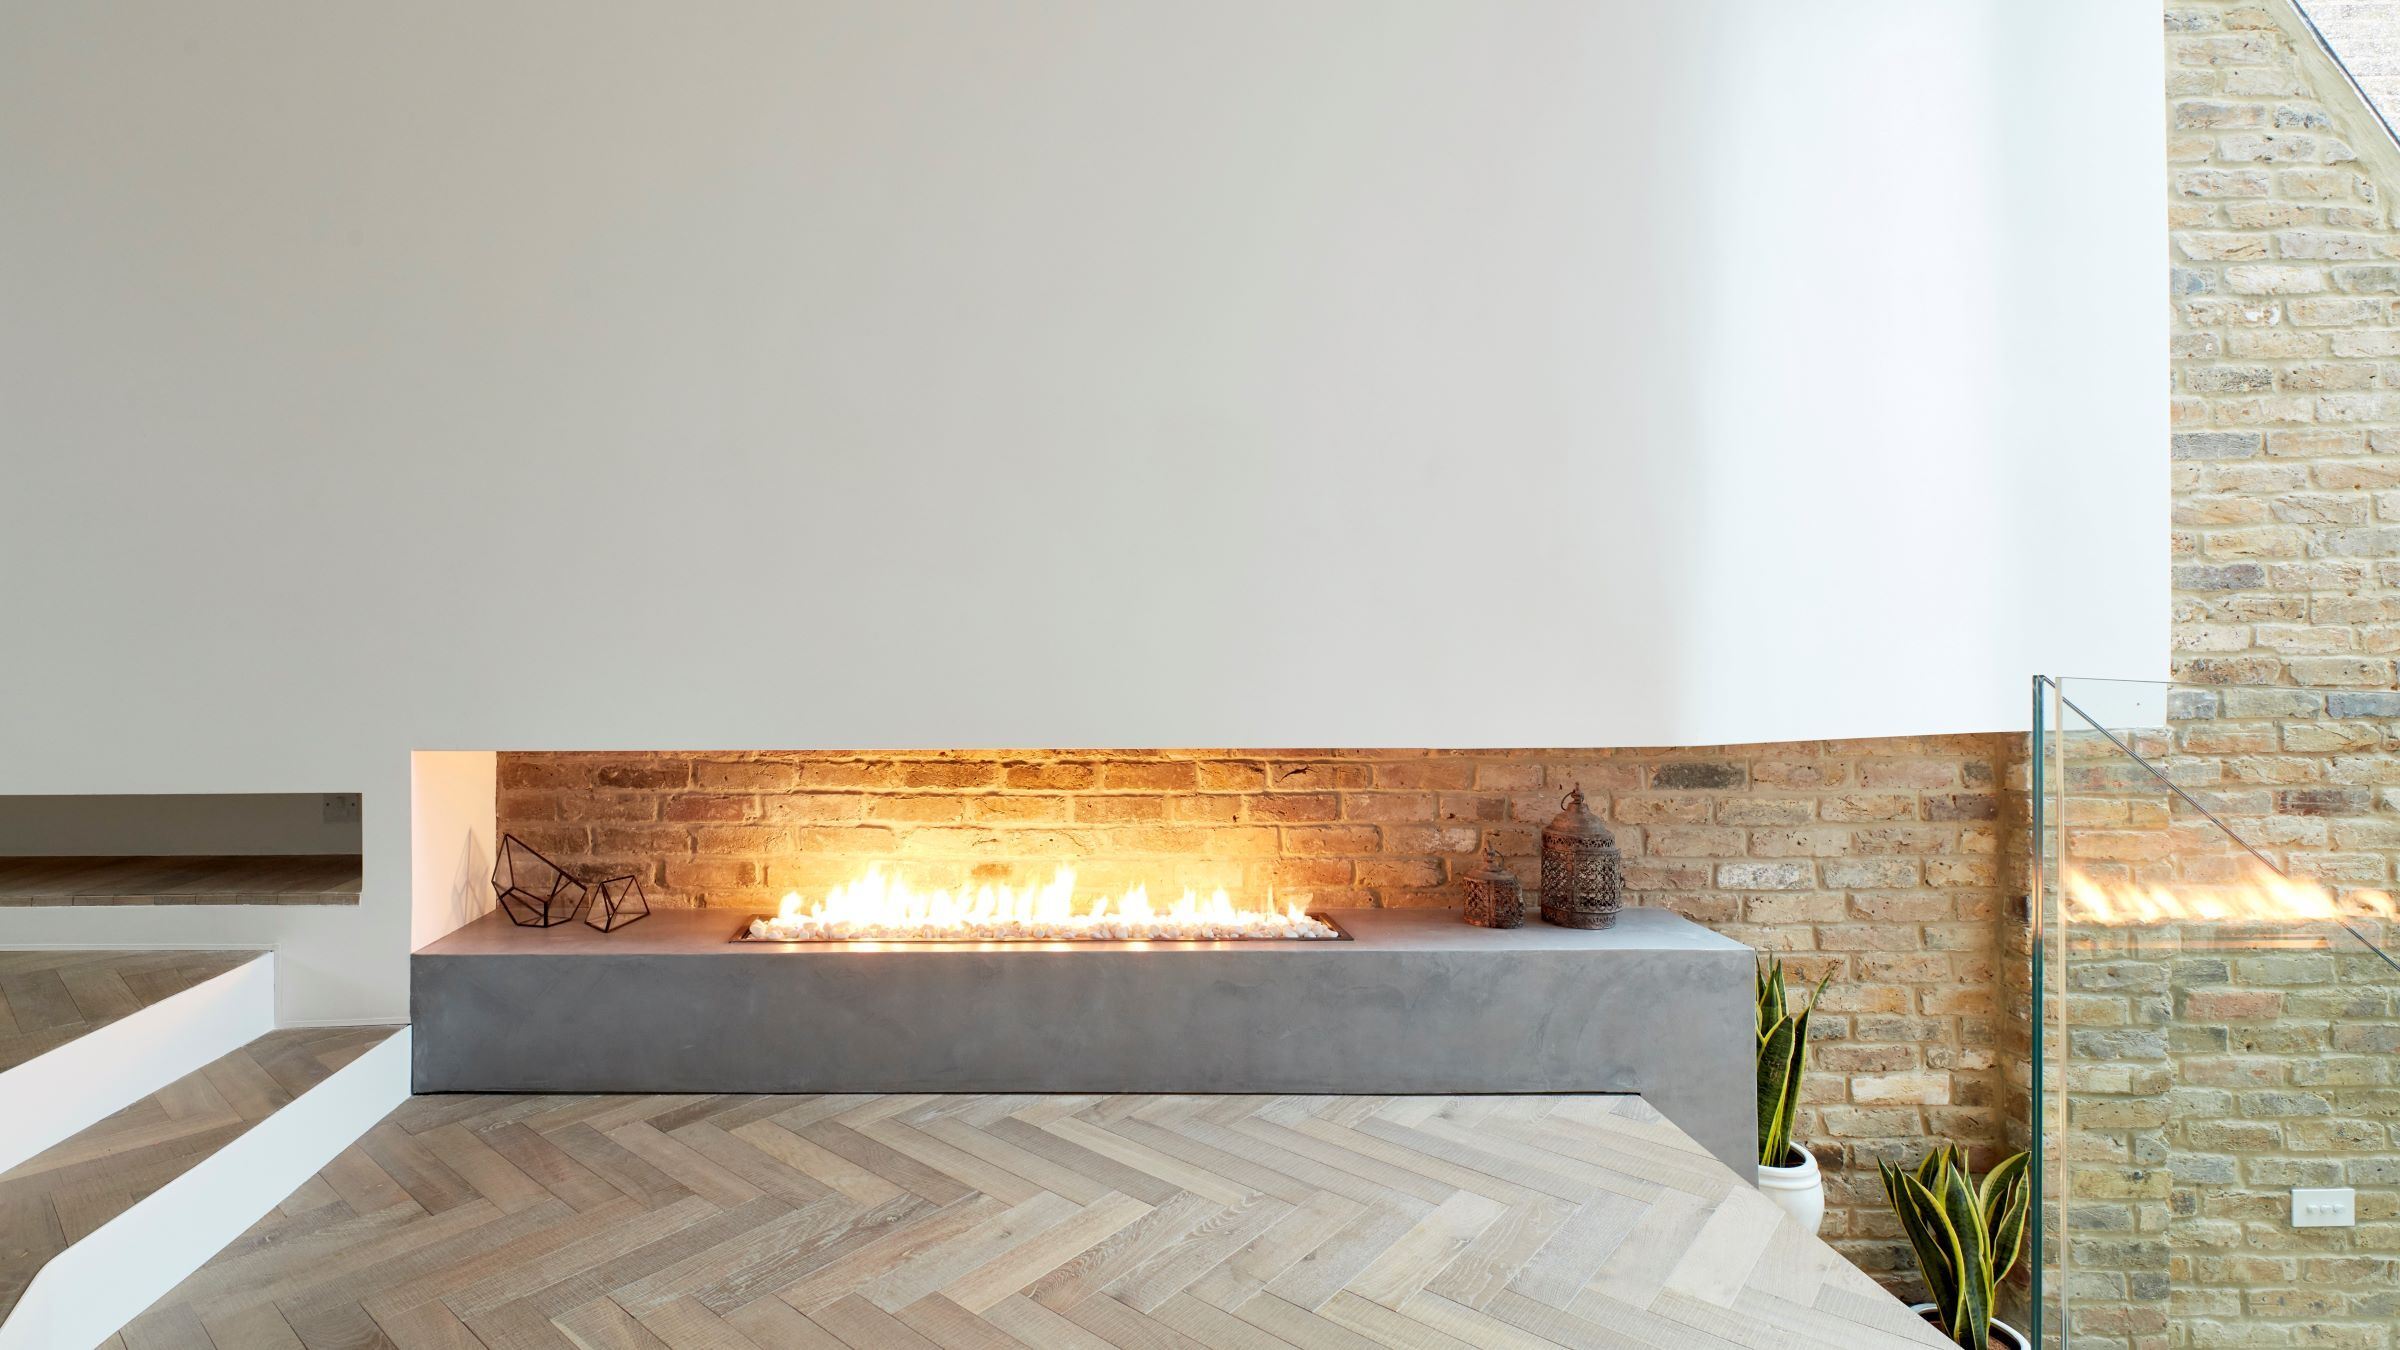 Oak Tate Bute herringbone floor scenario architects Hackney home with fireplace